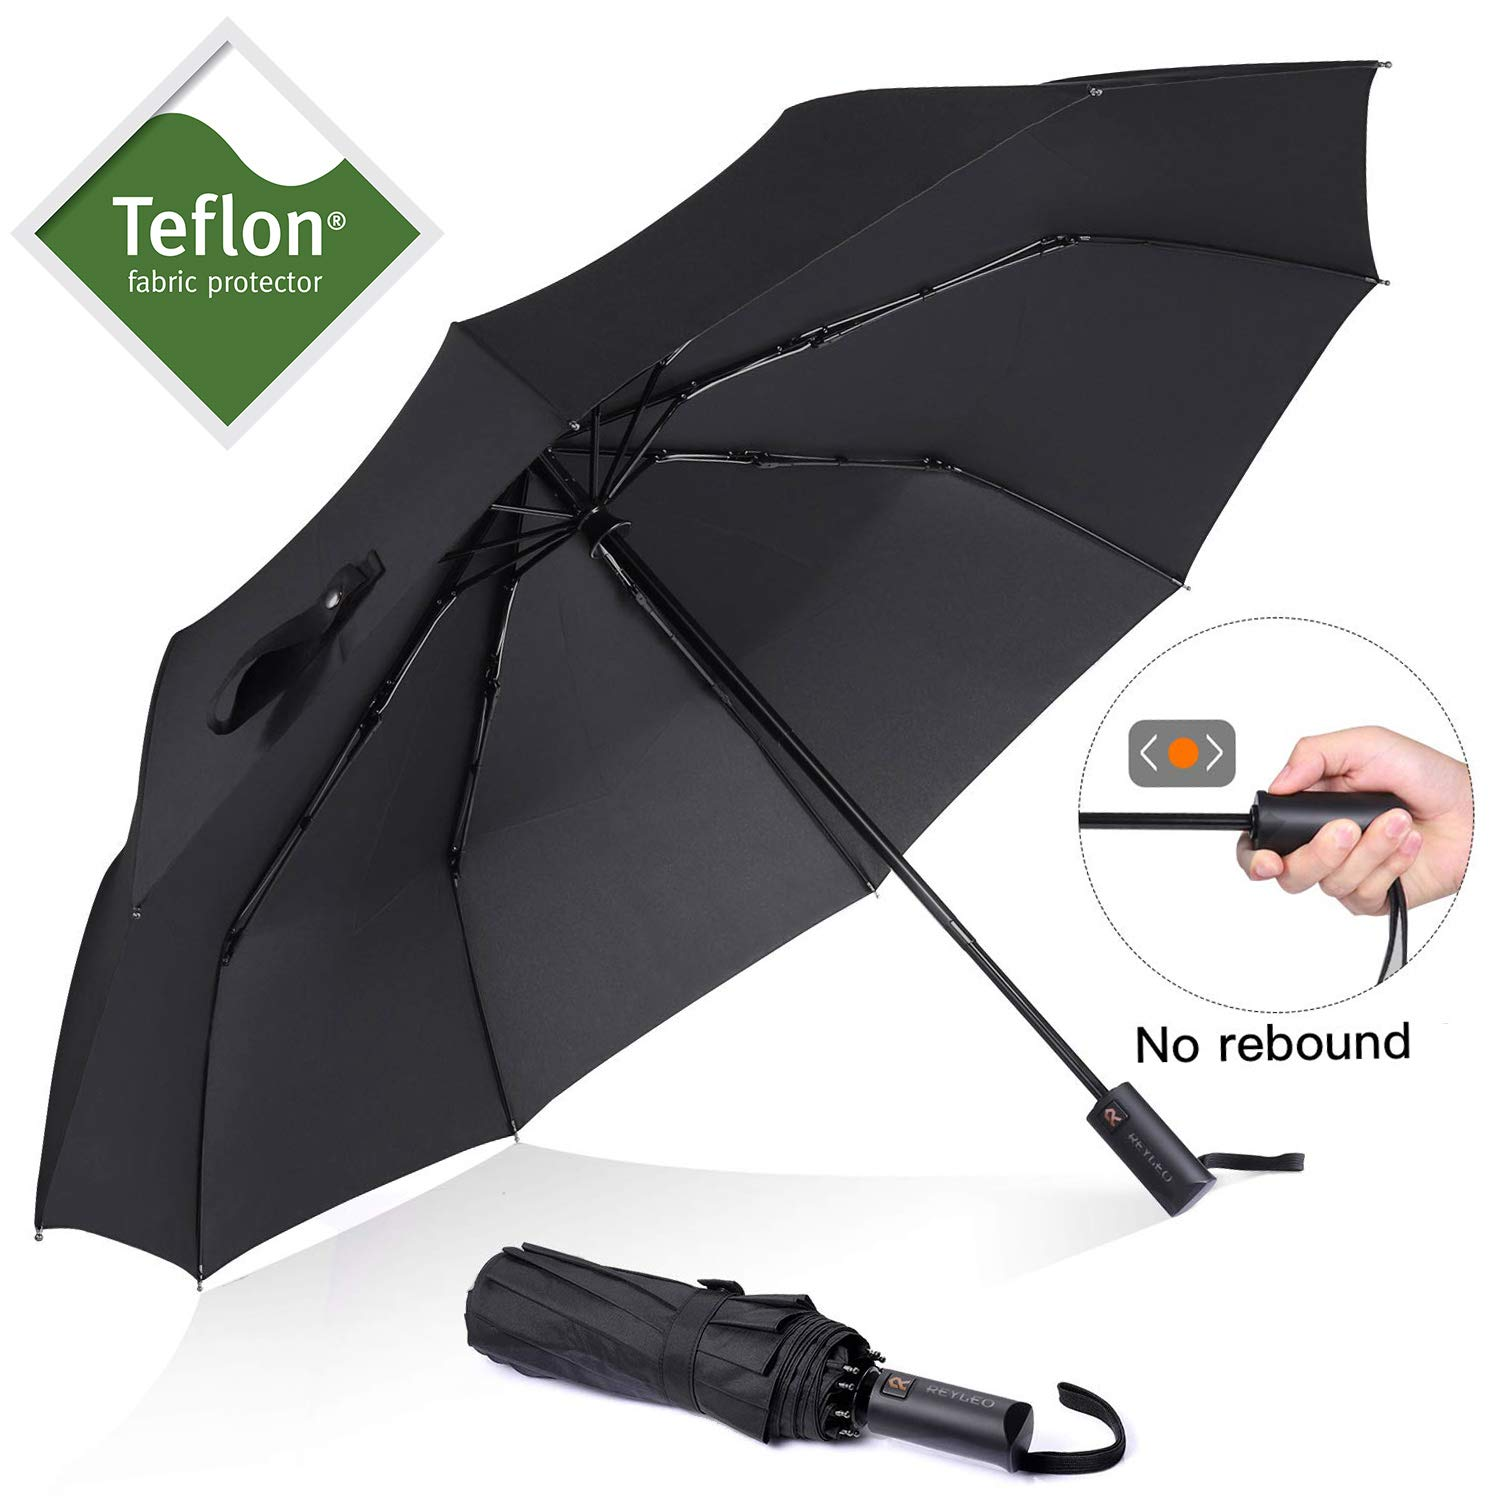 REYLEO Windproof Travel Umbrella with Teflon Coating, Ultralight Only 520g, Auto Open/Close Button, Folding Umbrellas Can be Folded 10000+ Times